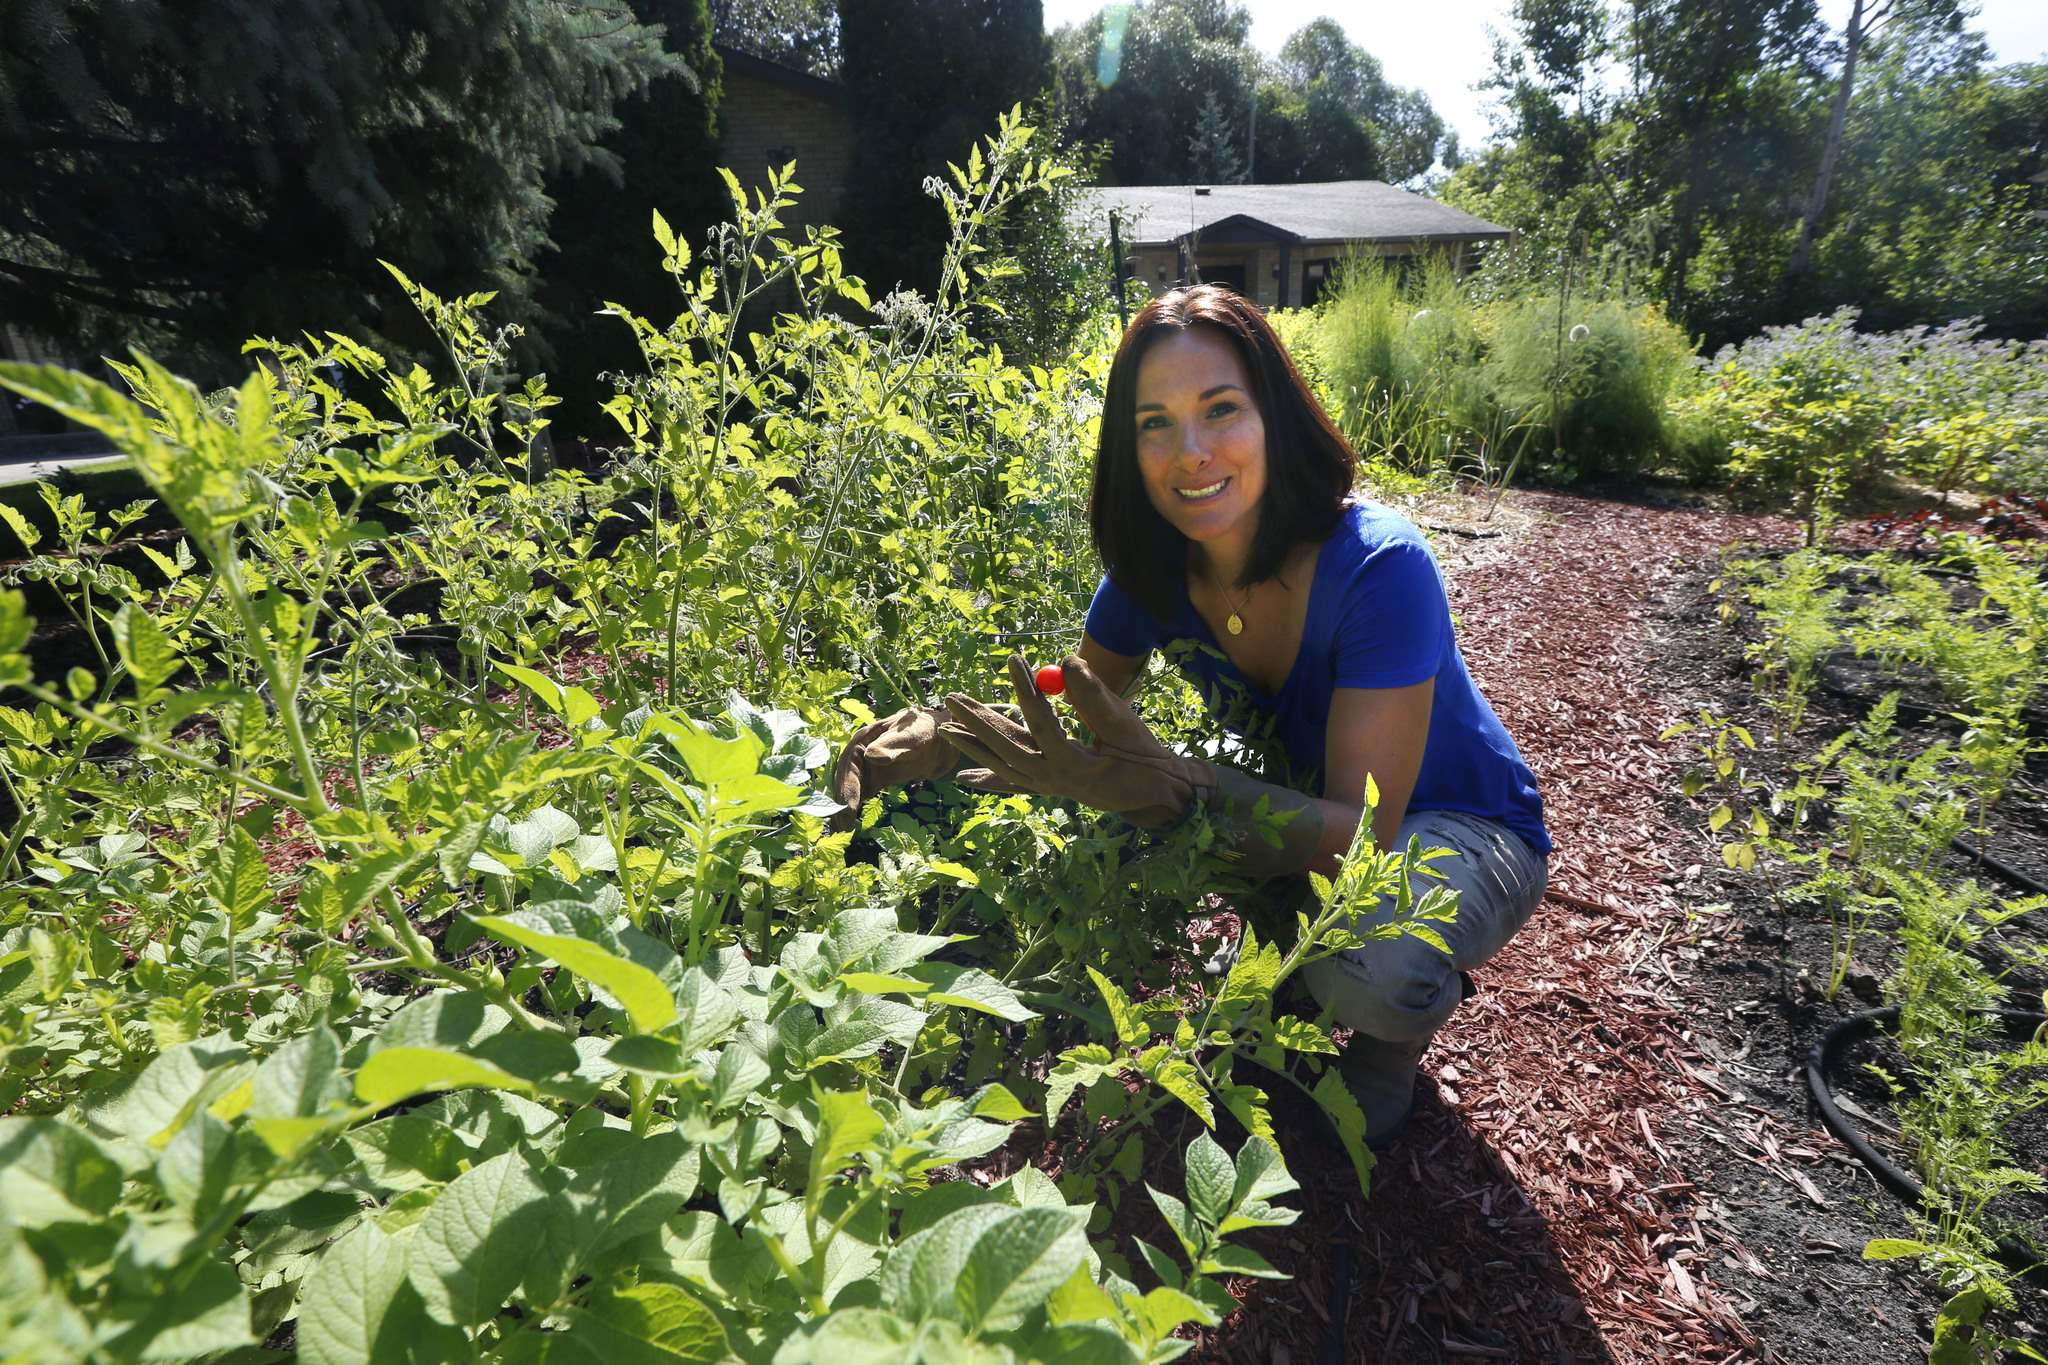 WAYNE GLOWACKI / WINNIPEG FREE PRESS</p><p>Jill Kantor grows an extensive vegetable garden in the front yard of her Tuxedo home. She also teaches classes on how to grow and ferment food.</p></p>